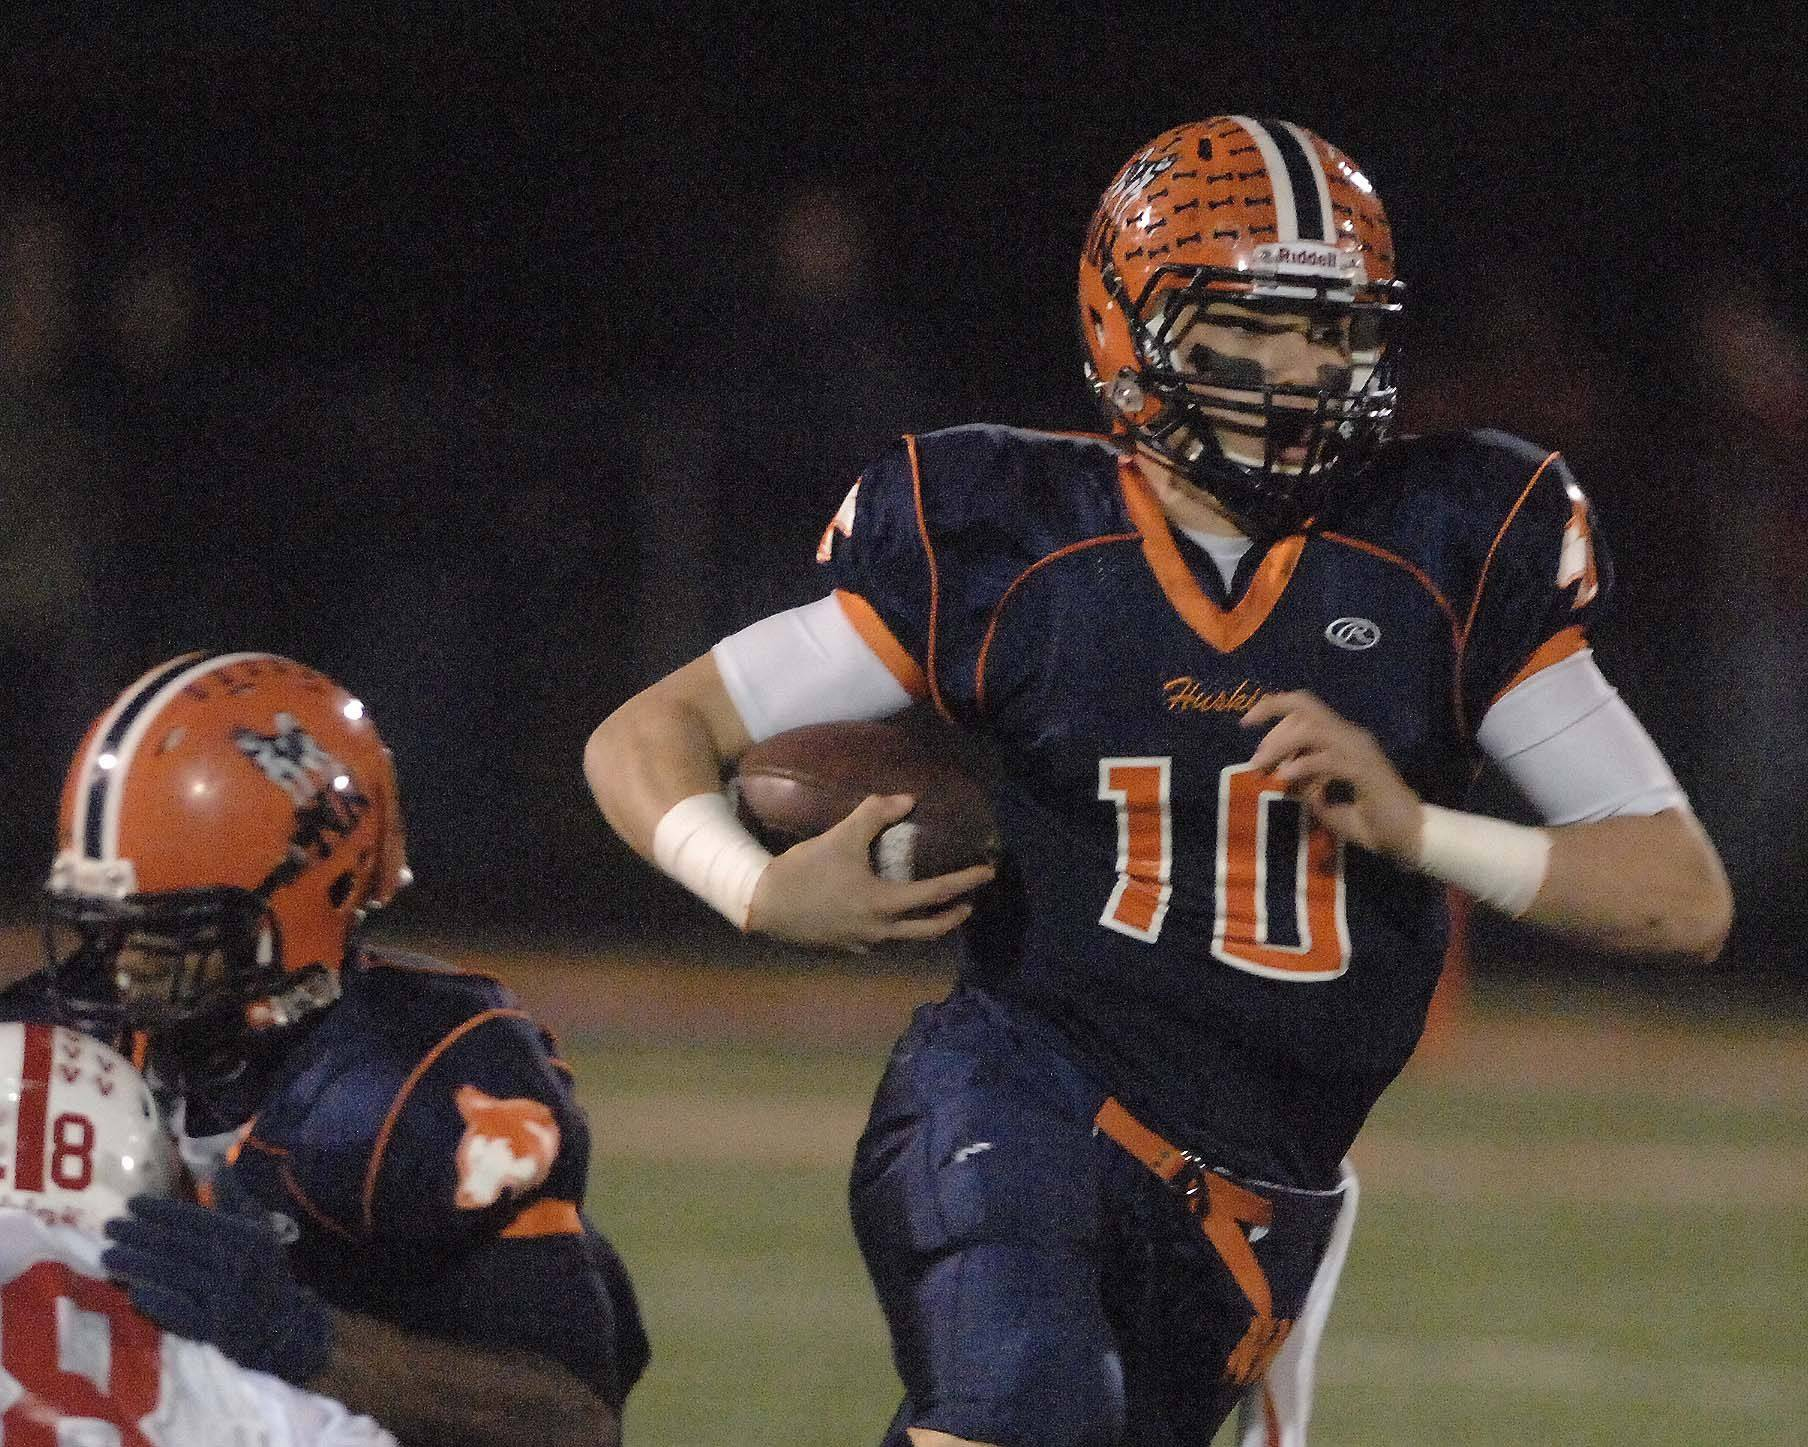 Matt Lacosse of Naperville North runs the ball.